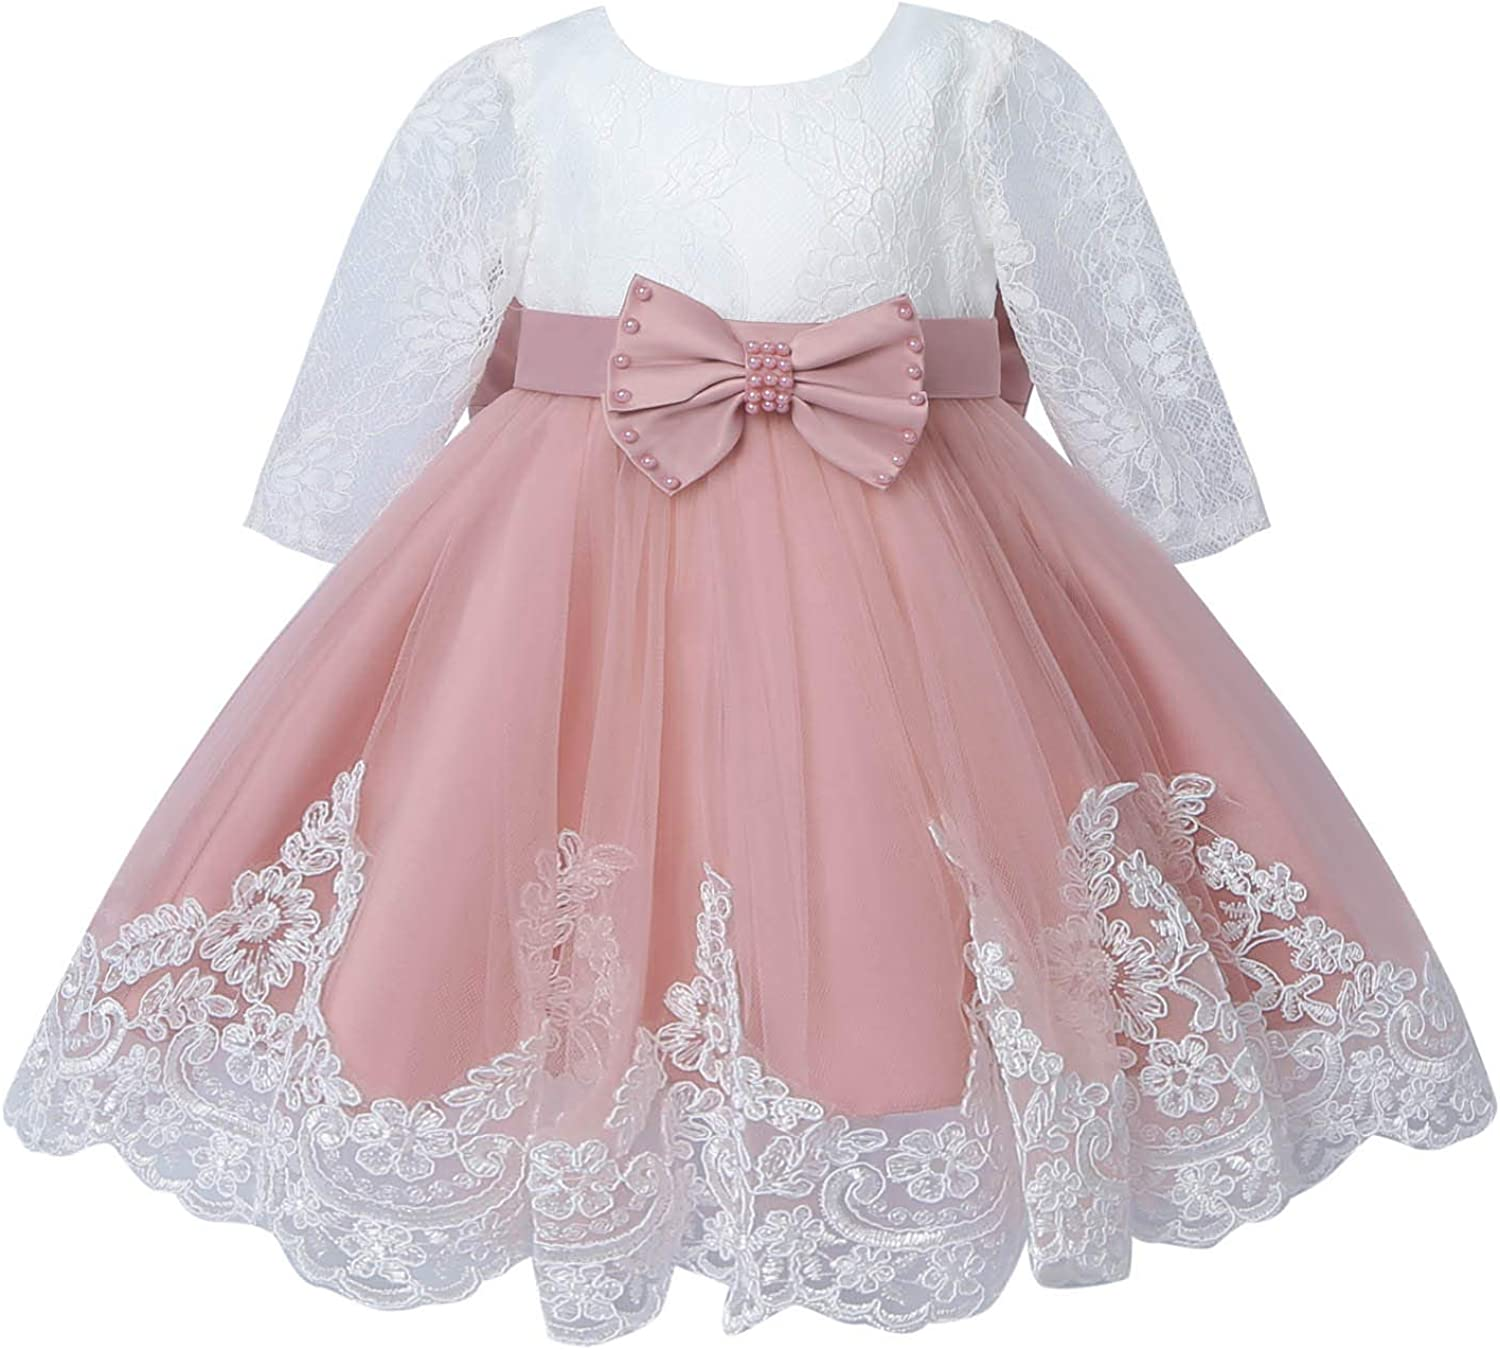 YONGHS Toddler Girls Lace Embroidered Flower Girl Dress Kids Bowknot Mesh Tutu Wedding Party Pageant Gown